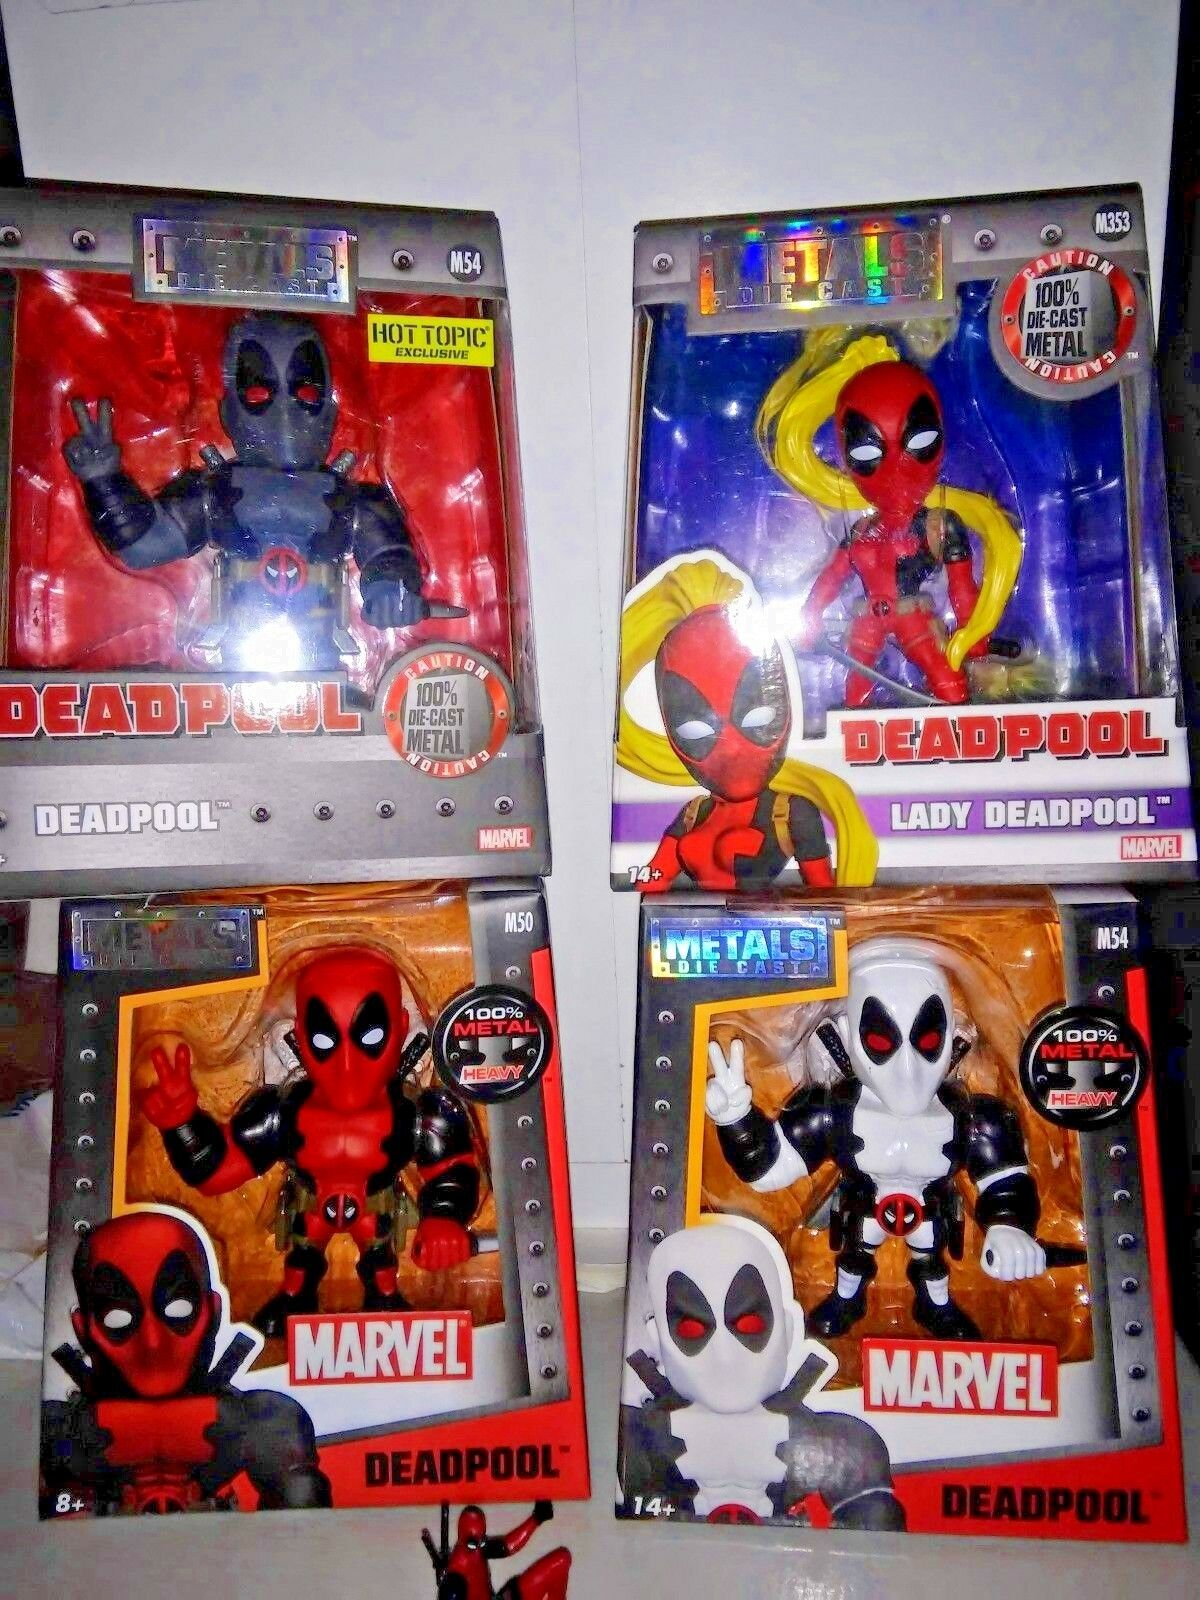 Deadpool-X-Force-LADY Deadpool-Metal Figure Set of 4